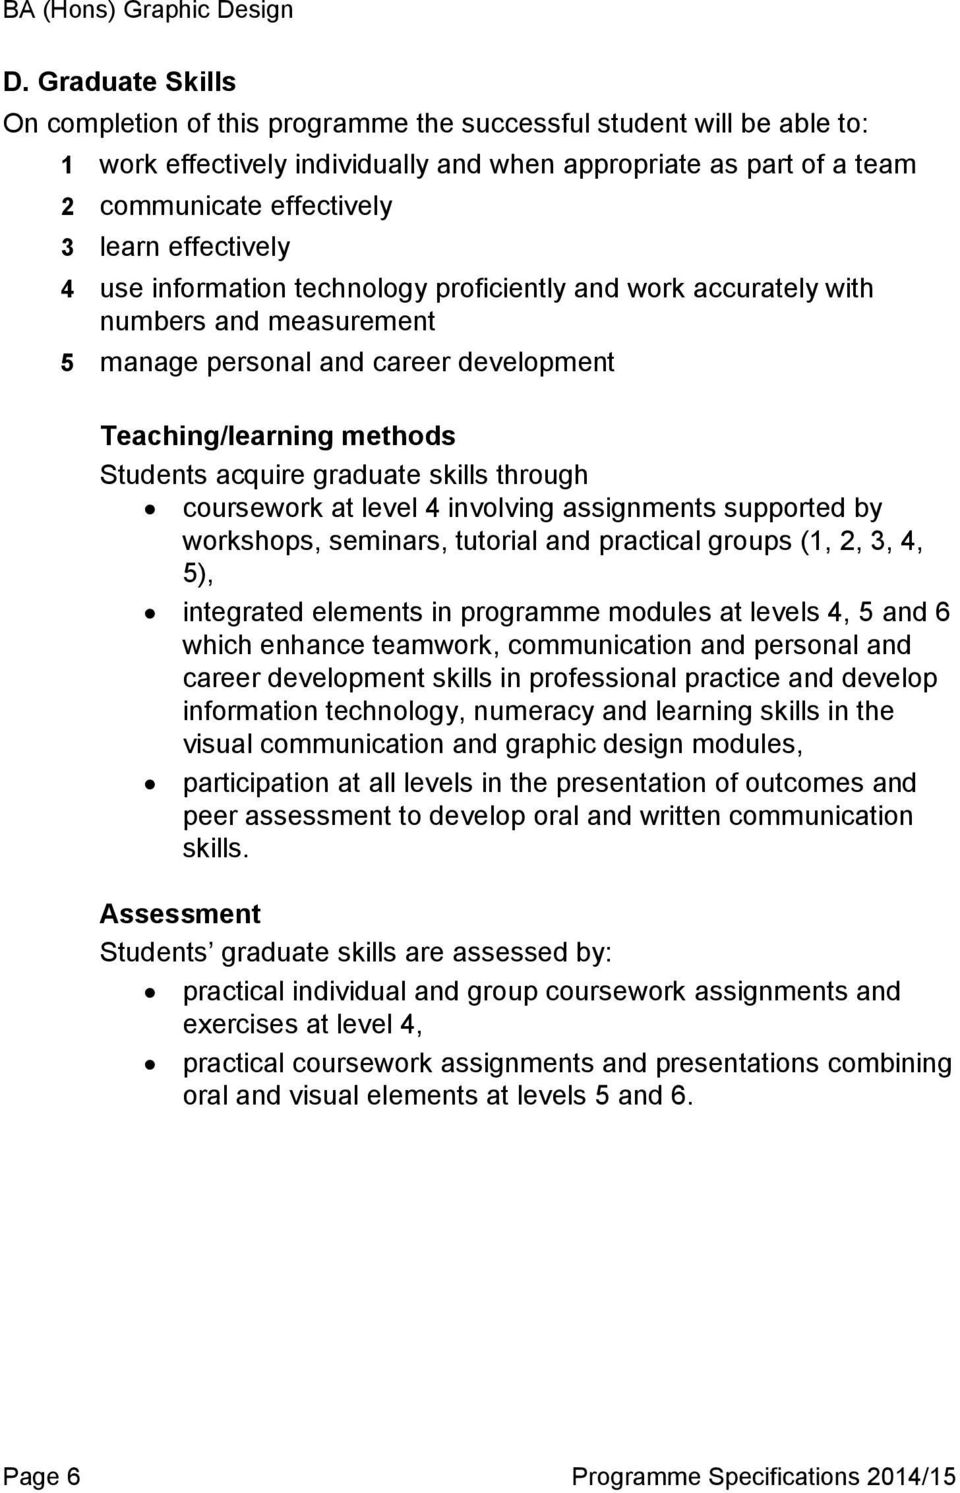 skills through coursework at level 4 involving assignments supported by workshops, seminars, tutorial and practical groups (1, 2, 3, 4, 5), integrated elements in programme modules at levels 4, 5 and